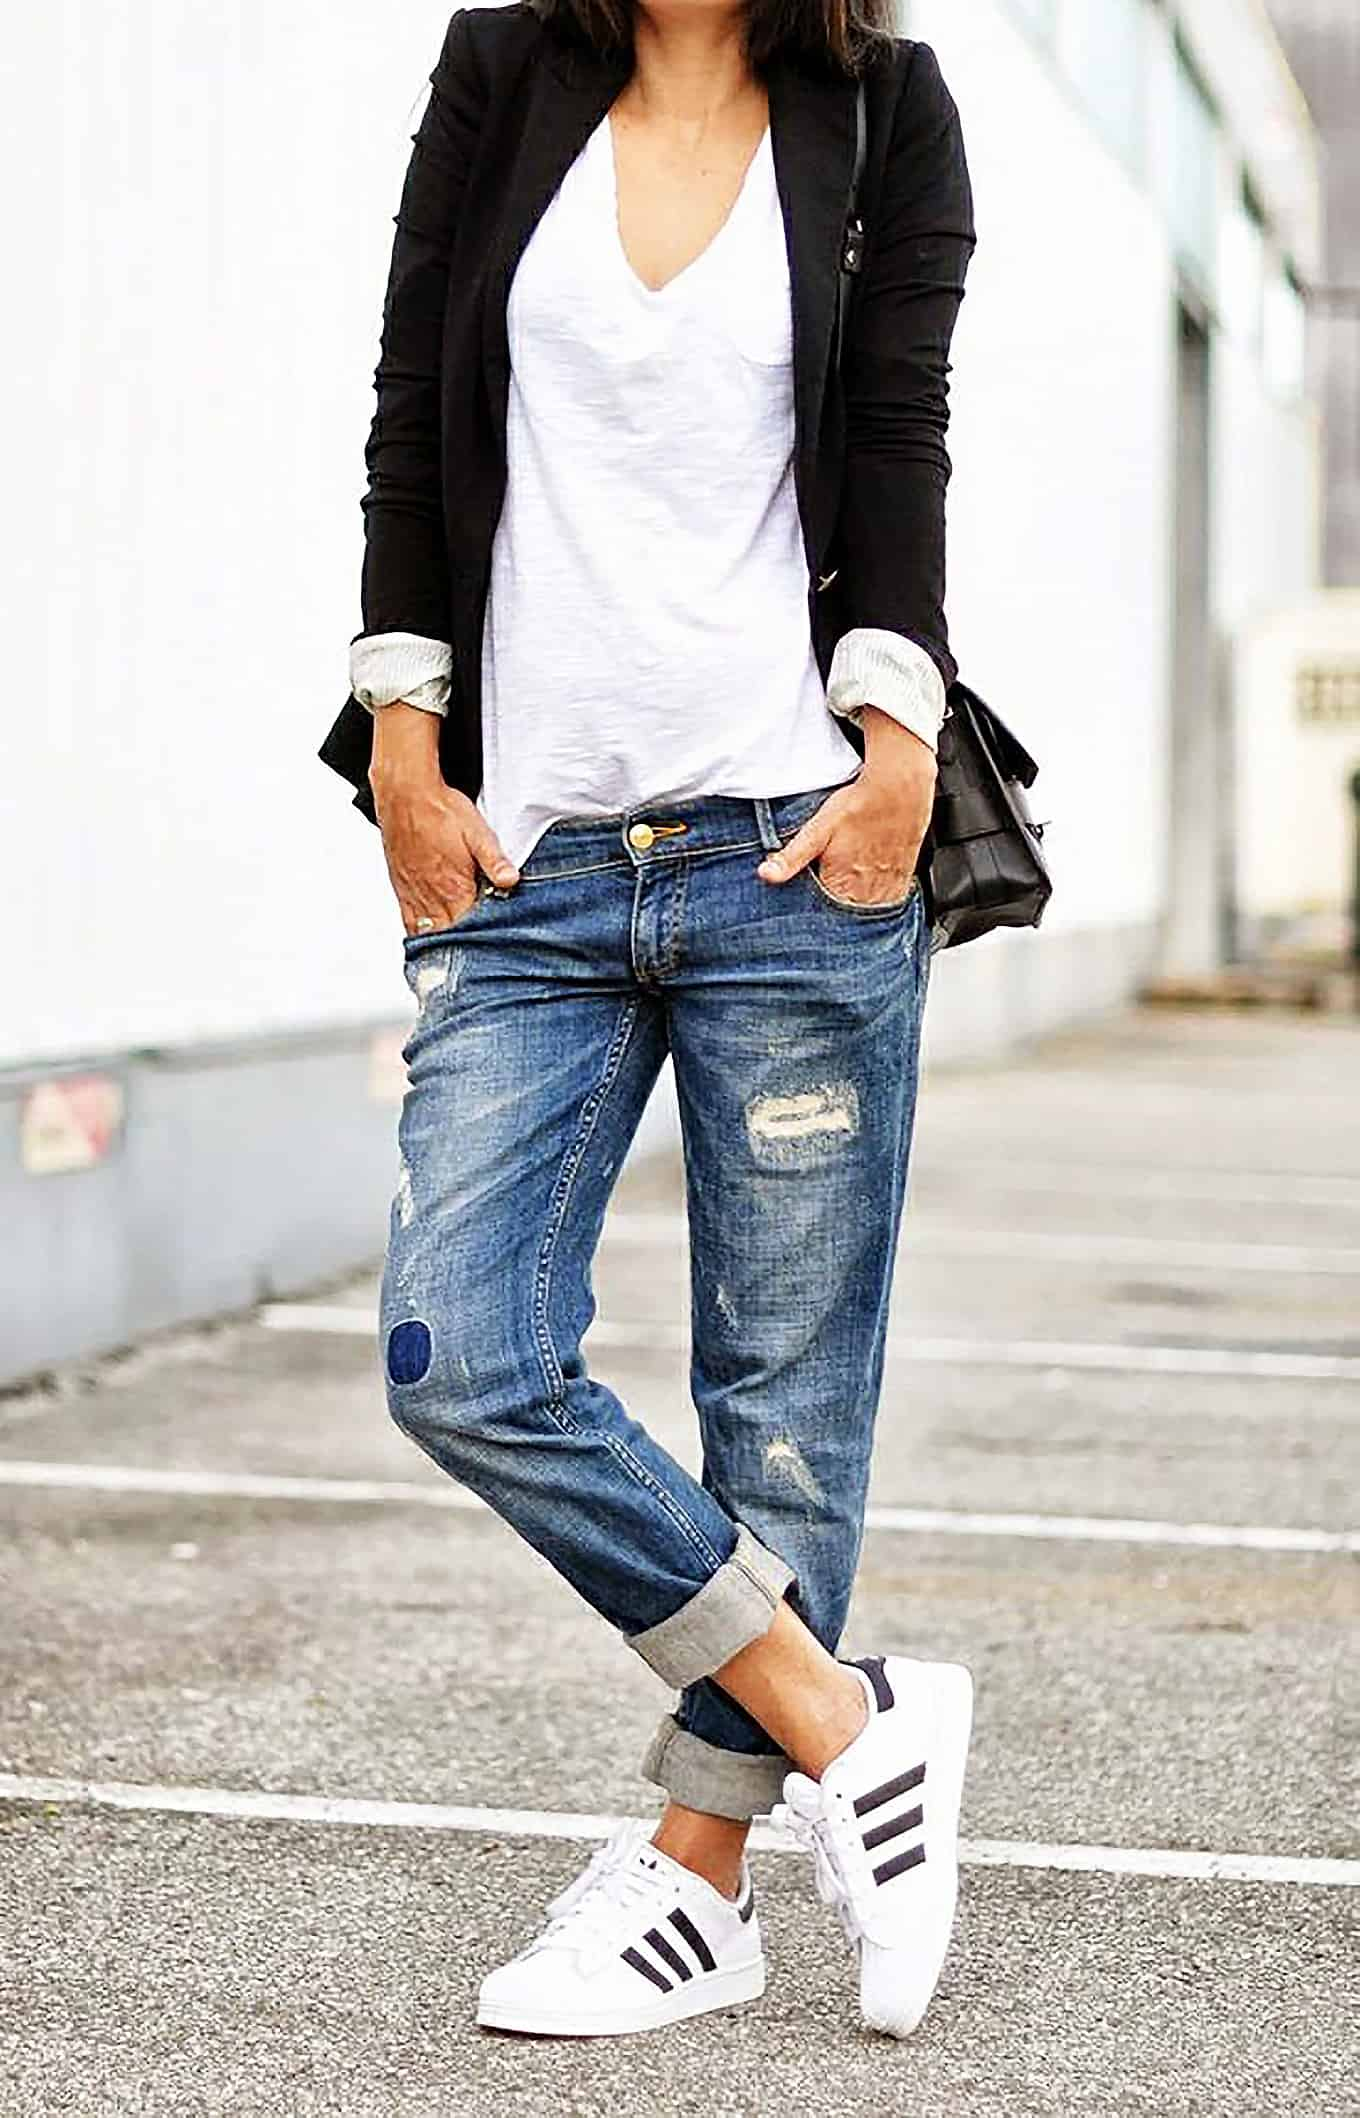 Denim pants comfy weekend outfit ideas